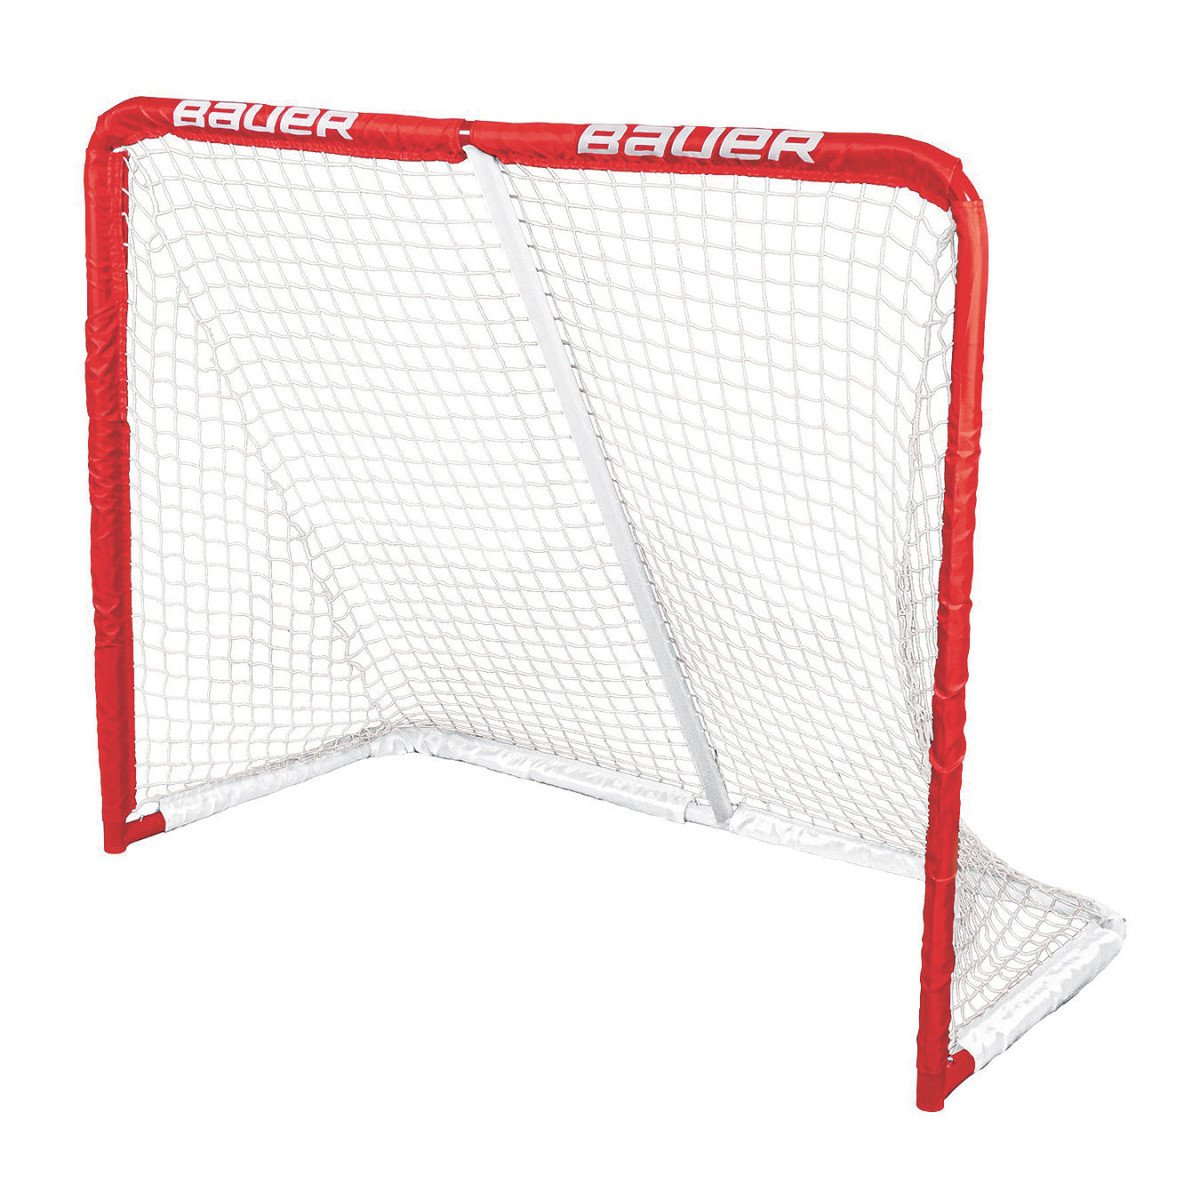 BAUER Rec Steel Goal 50' (127x104x66cm) taille:Unisize 1046695